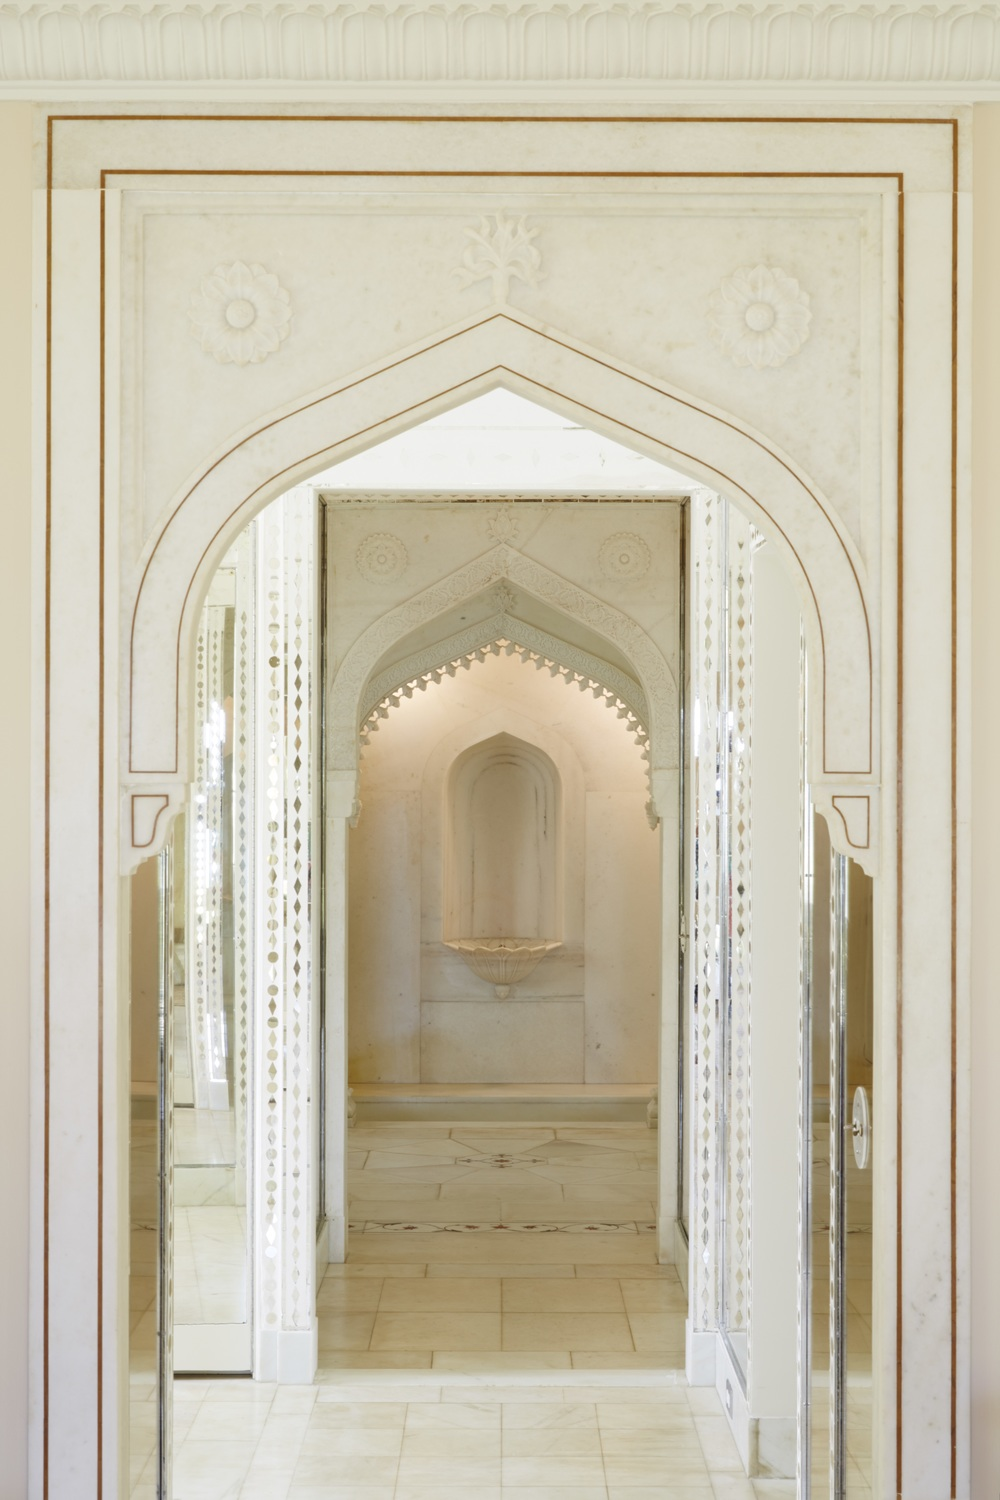 Bathroom of the Mughal Suite featuring marble wall panels and floor with inlaid stone. © 2014, Linny Morris, courtesy of the Doris Duke Foundation for Islamic Art, Honolulu, Hawai'i.